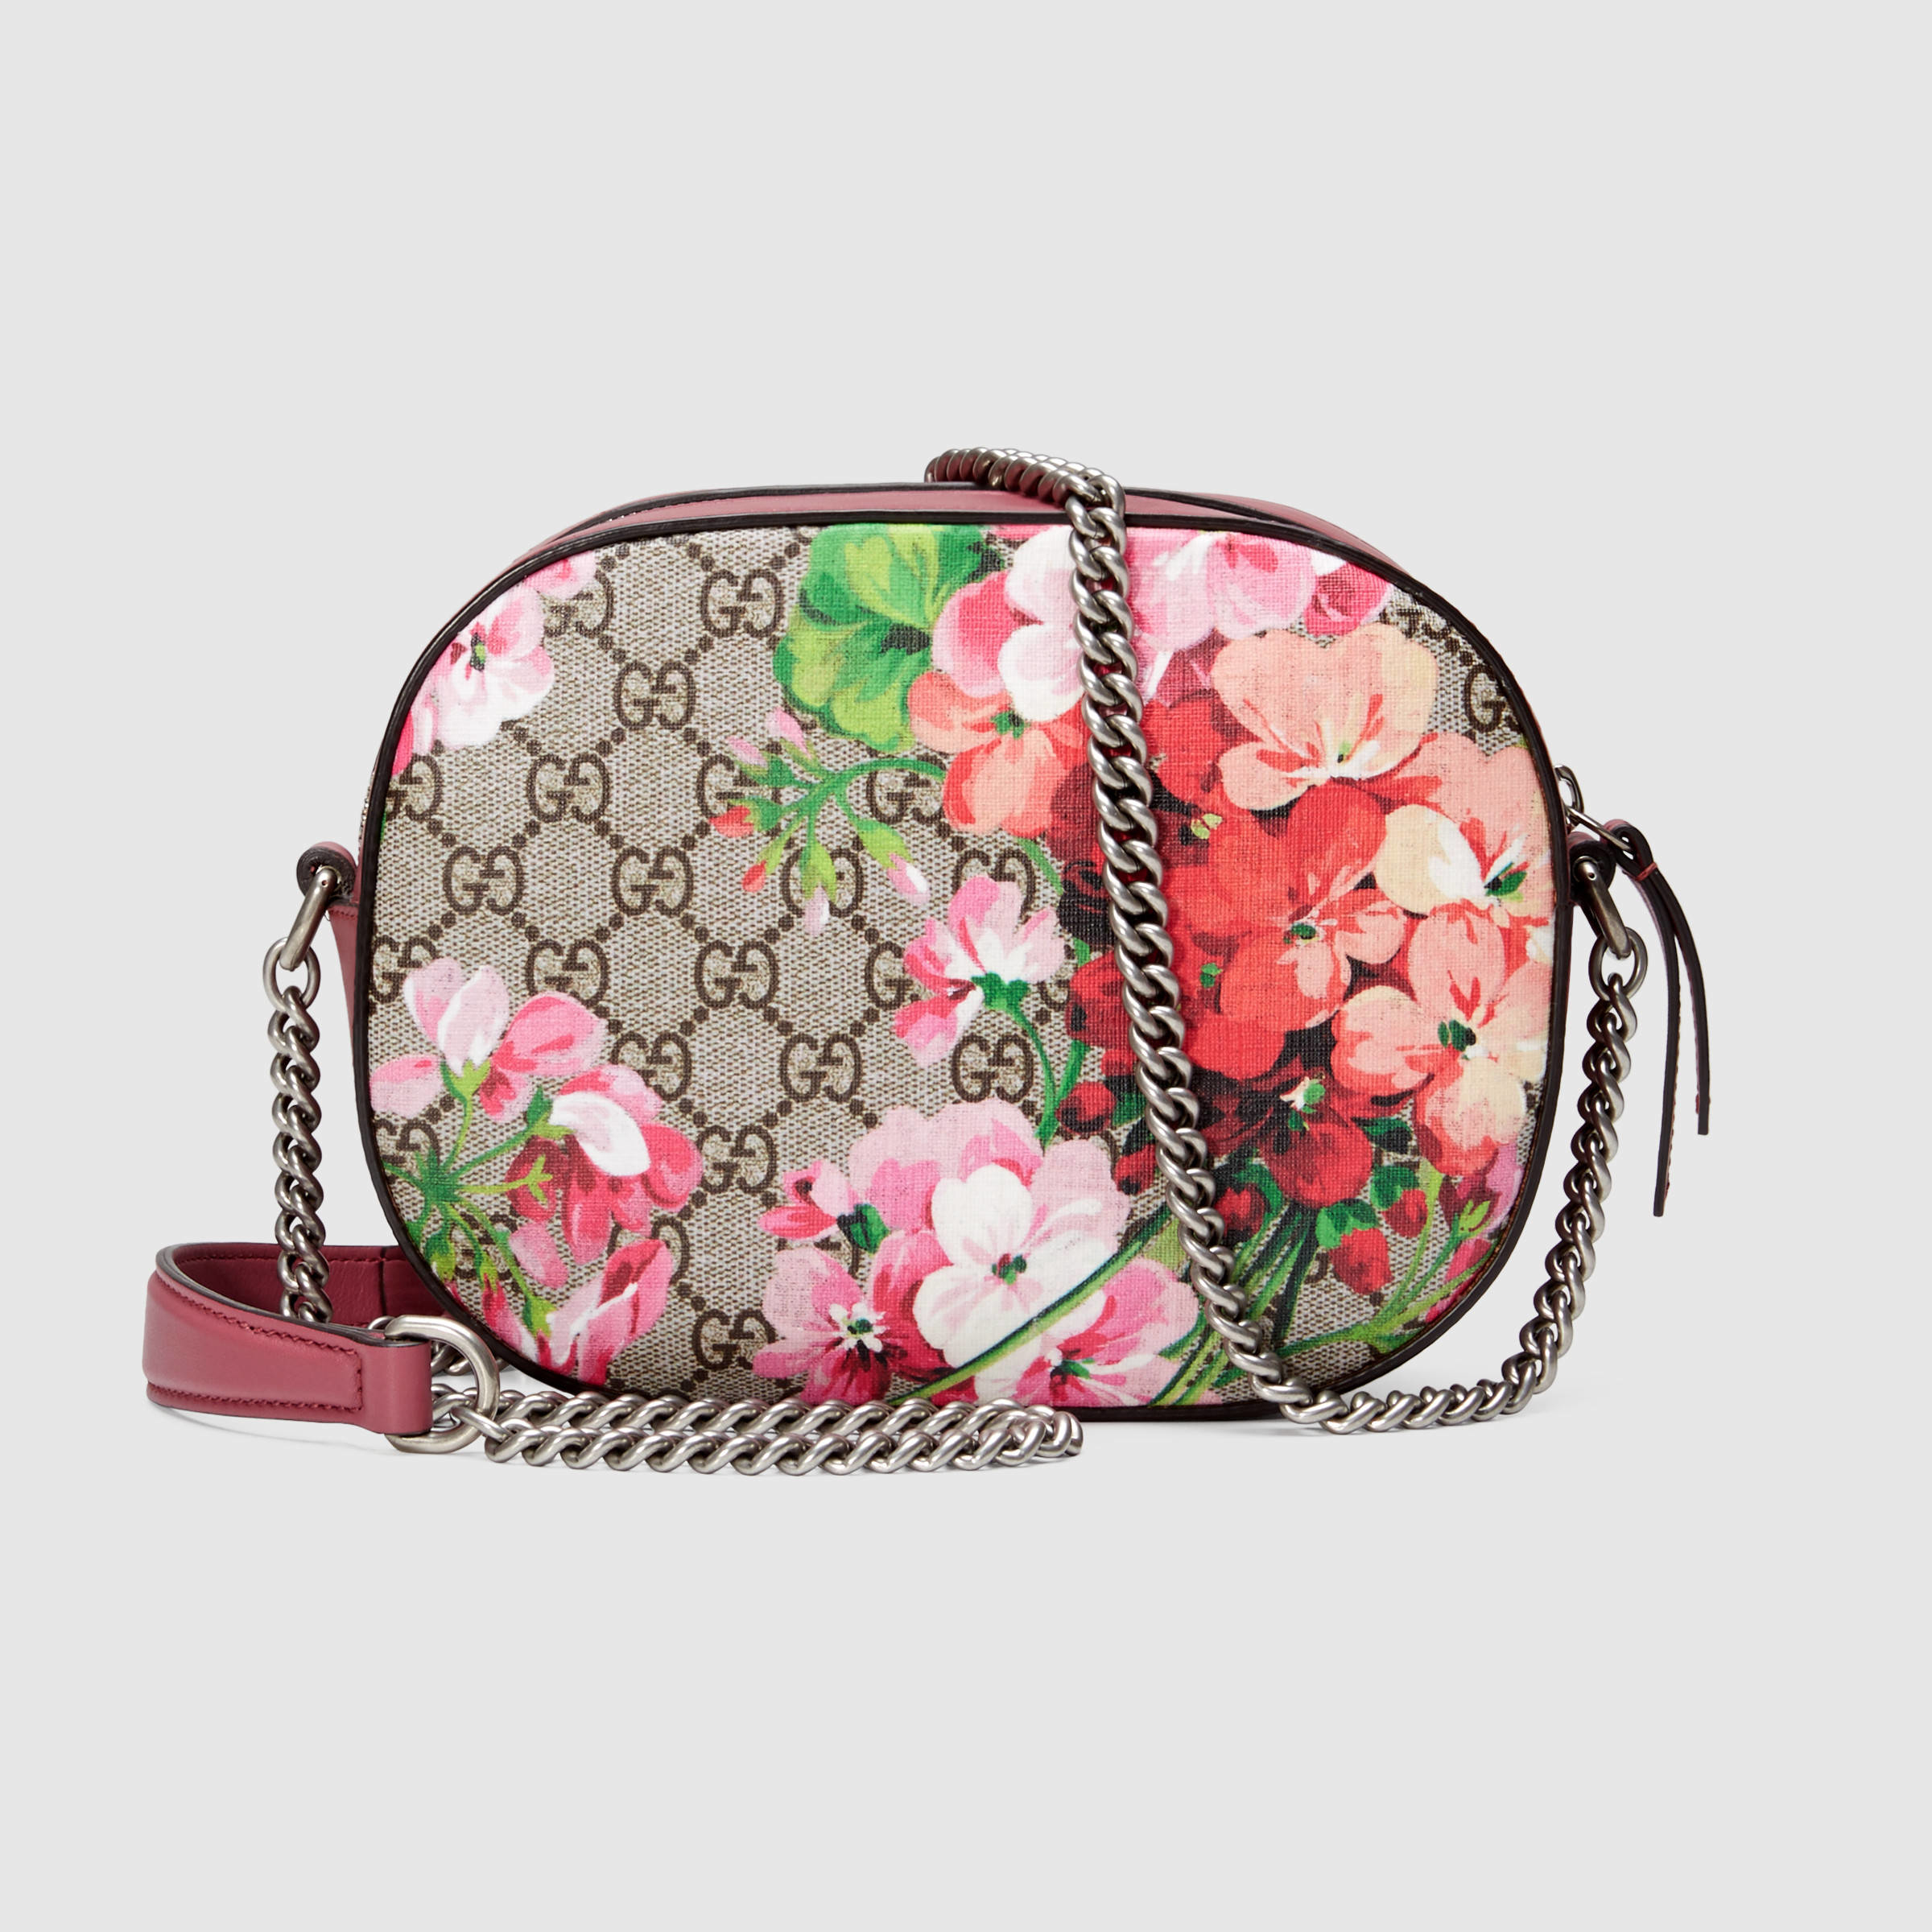 15aca79a30d5 Gucci Gg Blooms Mini Bag | Stanford Center for Opportunity Policy in ...